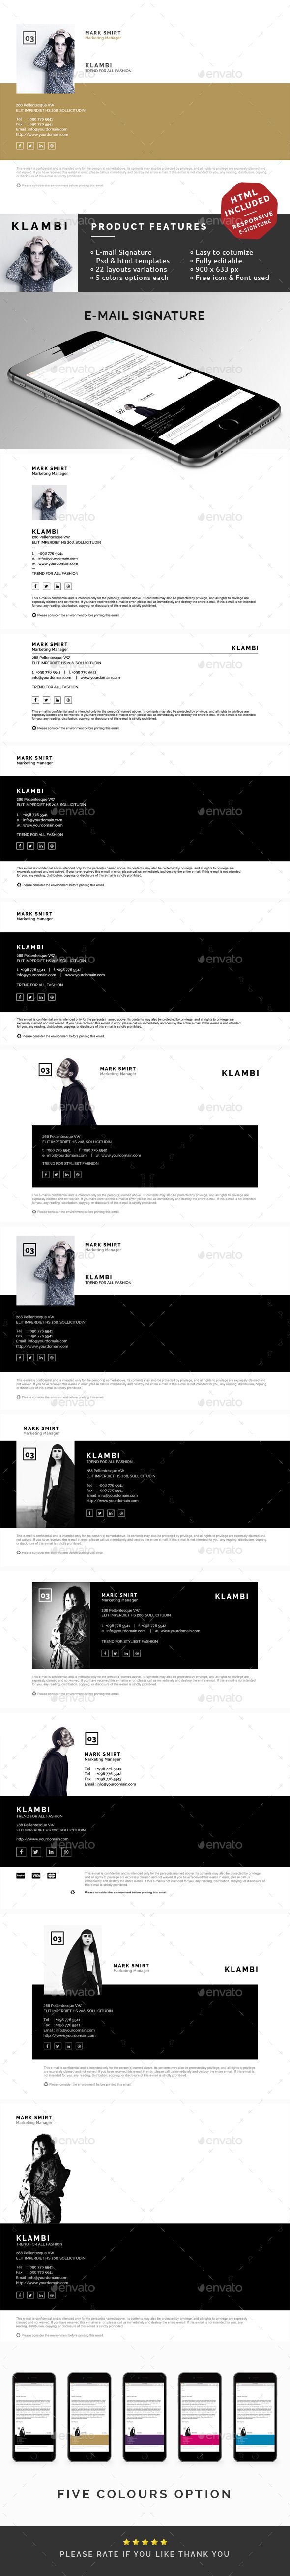 E-Mail Signature Template PSD. Download here: http://graphicriver.net/item/email-signature/10067970?s_rank=86&ref=yinkira